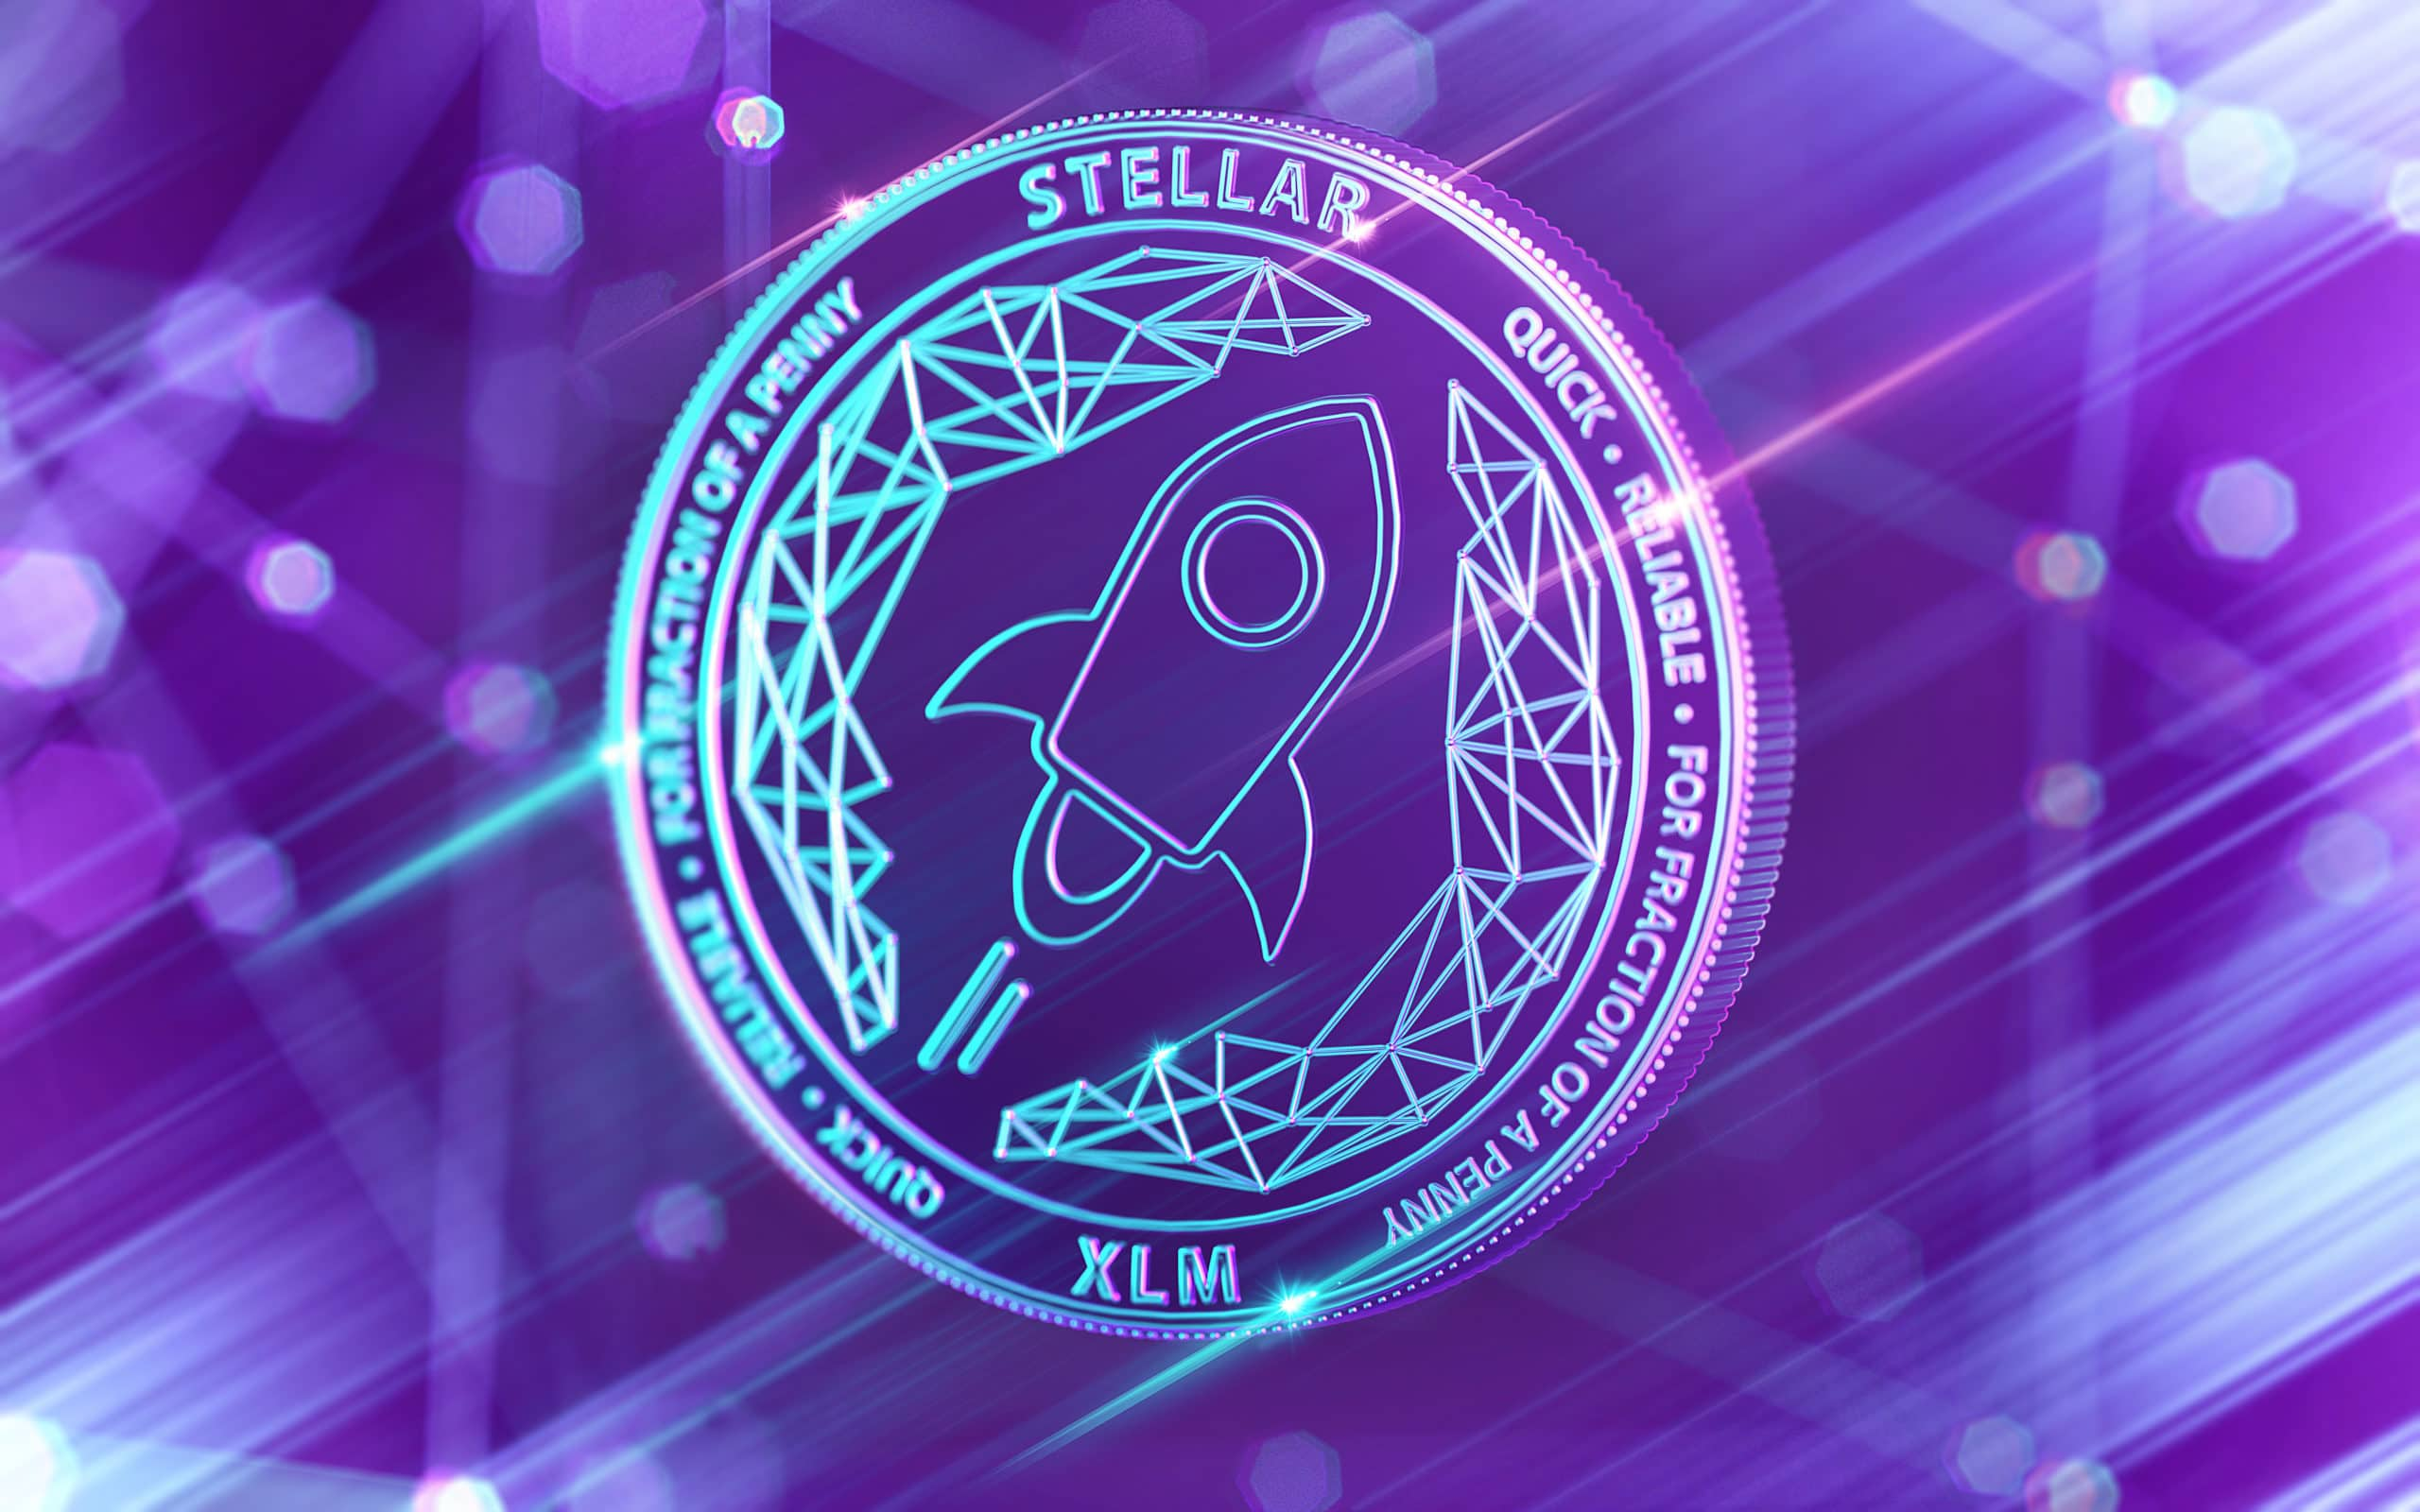 Is Stellar (XLM) going up or down? Here's my price prediction for April